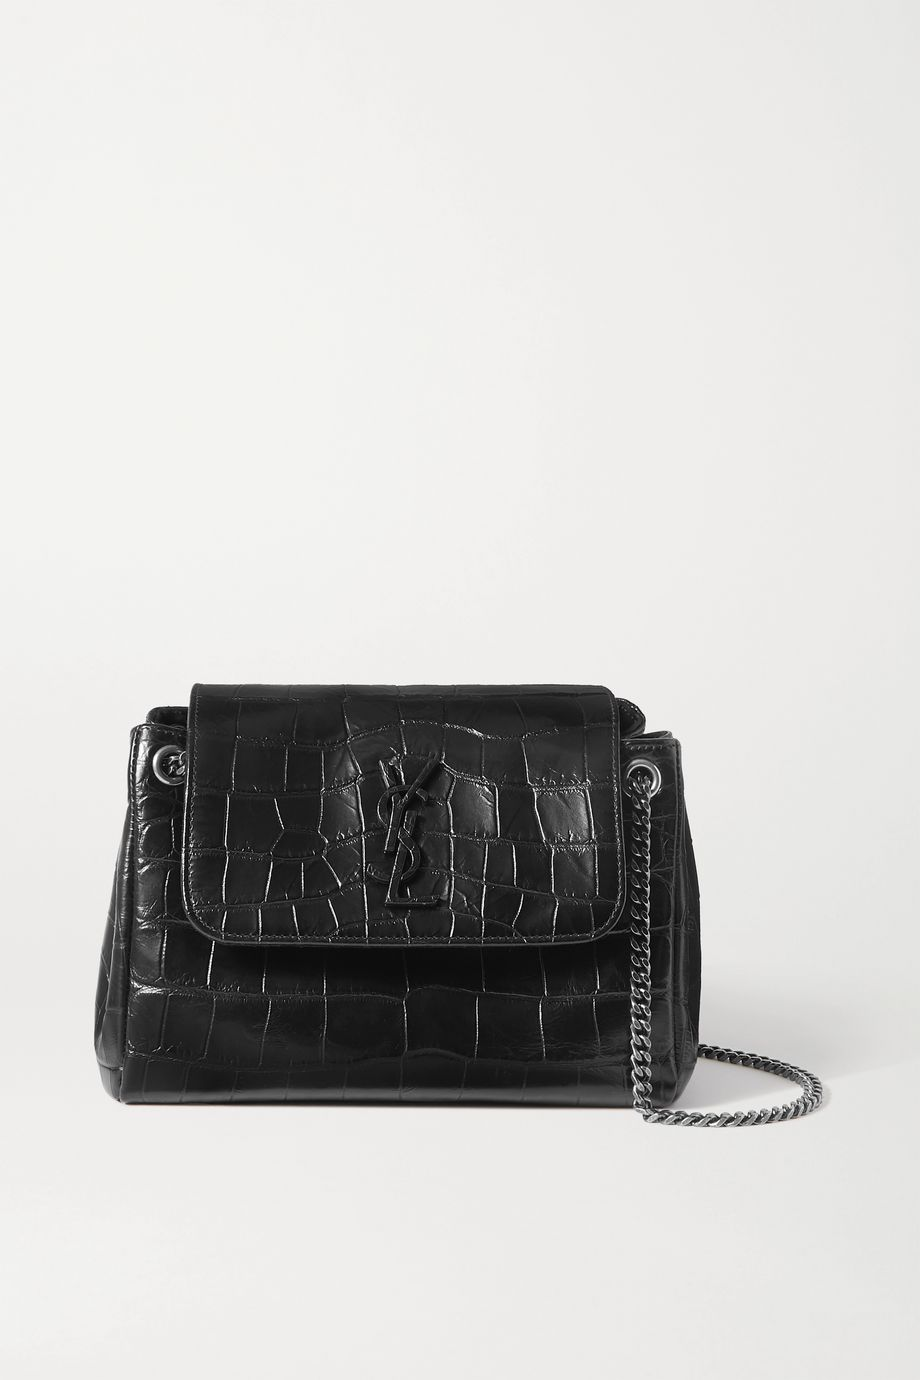 SAINT LAURENT Nolita small croc-effect leather shoulder bag